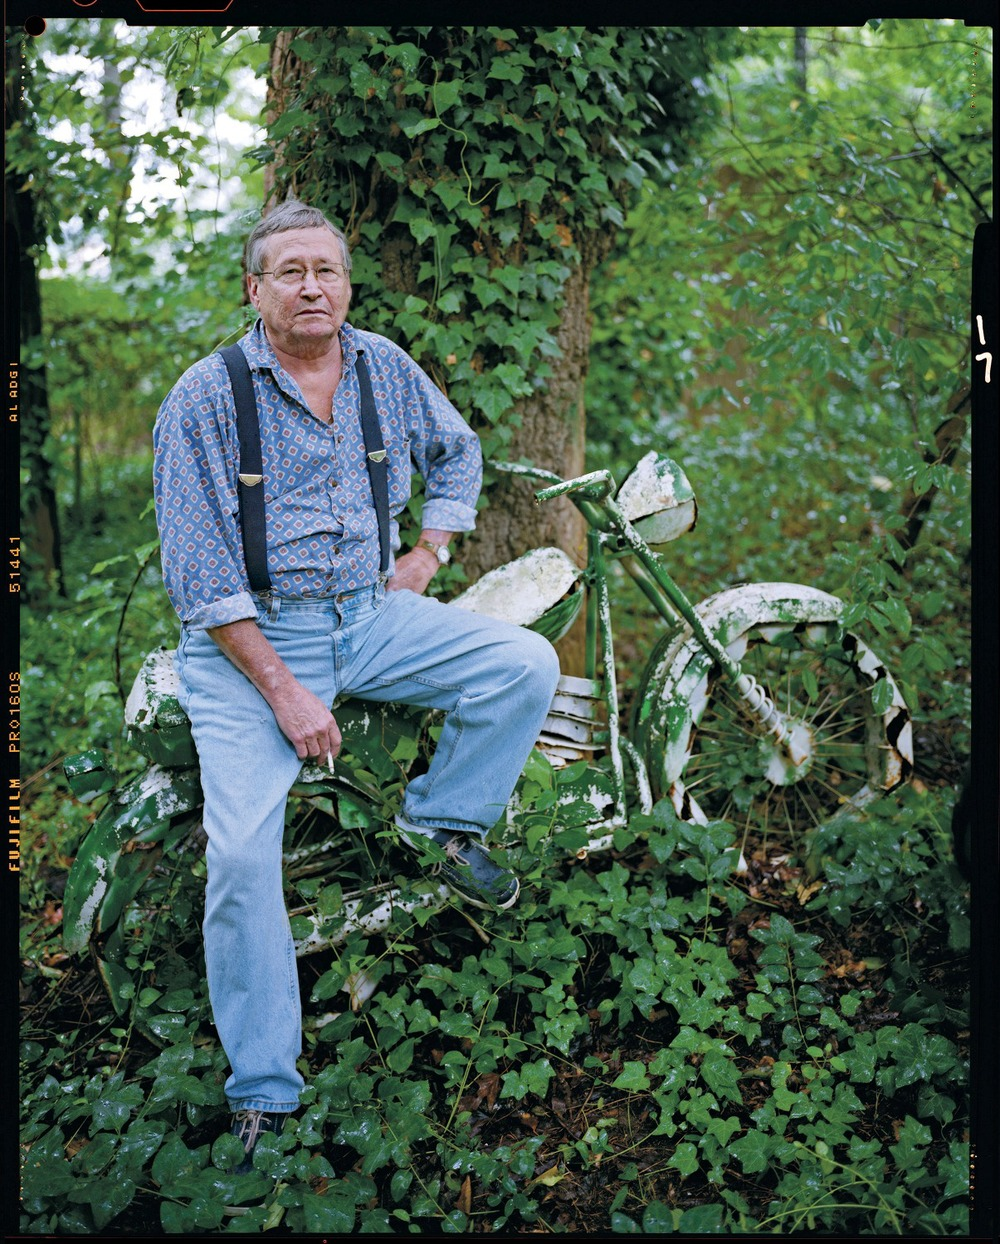 In 2008, Garden & Gun had the rare opportunity to photograph writer Barry Hannah at his home in Oxford, MS. Photographer Erika Larsen completely nailed it with this portrait taken behind his house. He passed away a year and a half later. © Erika Larsen